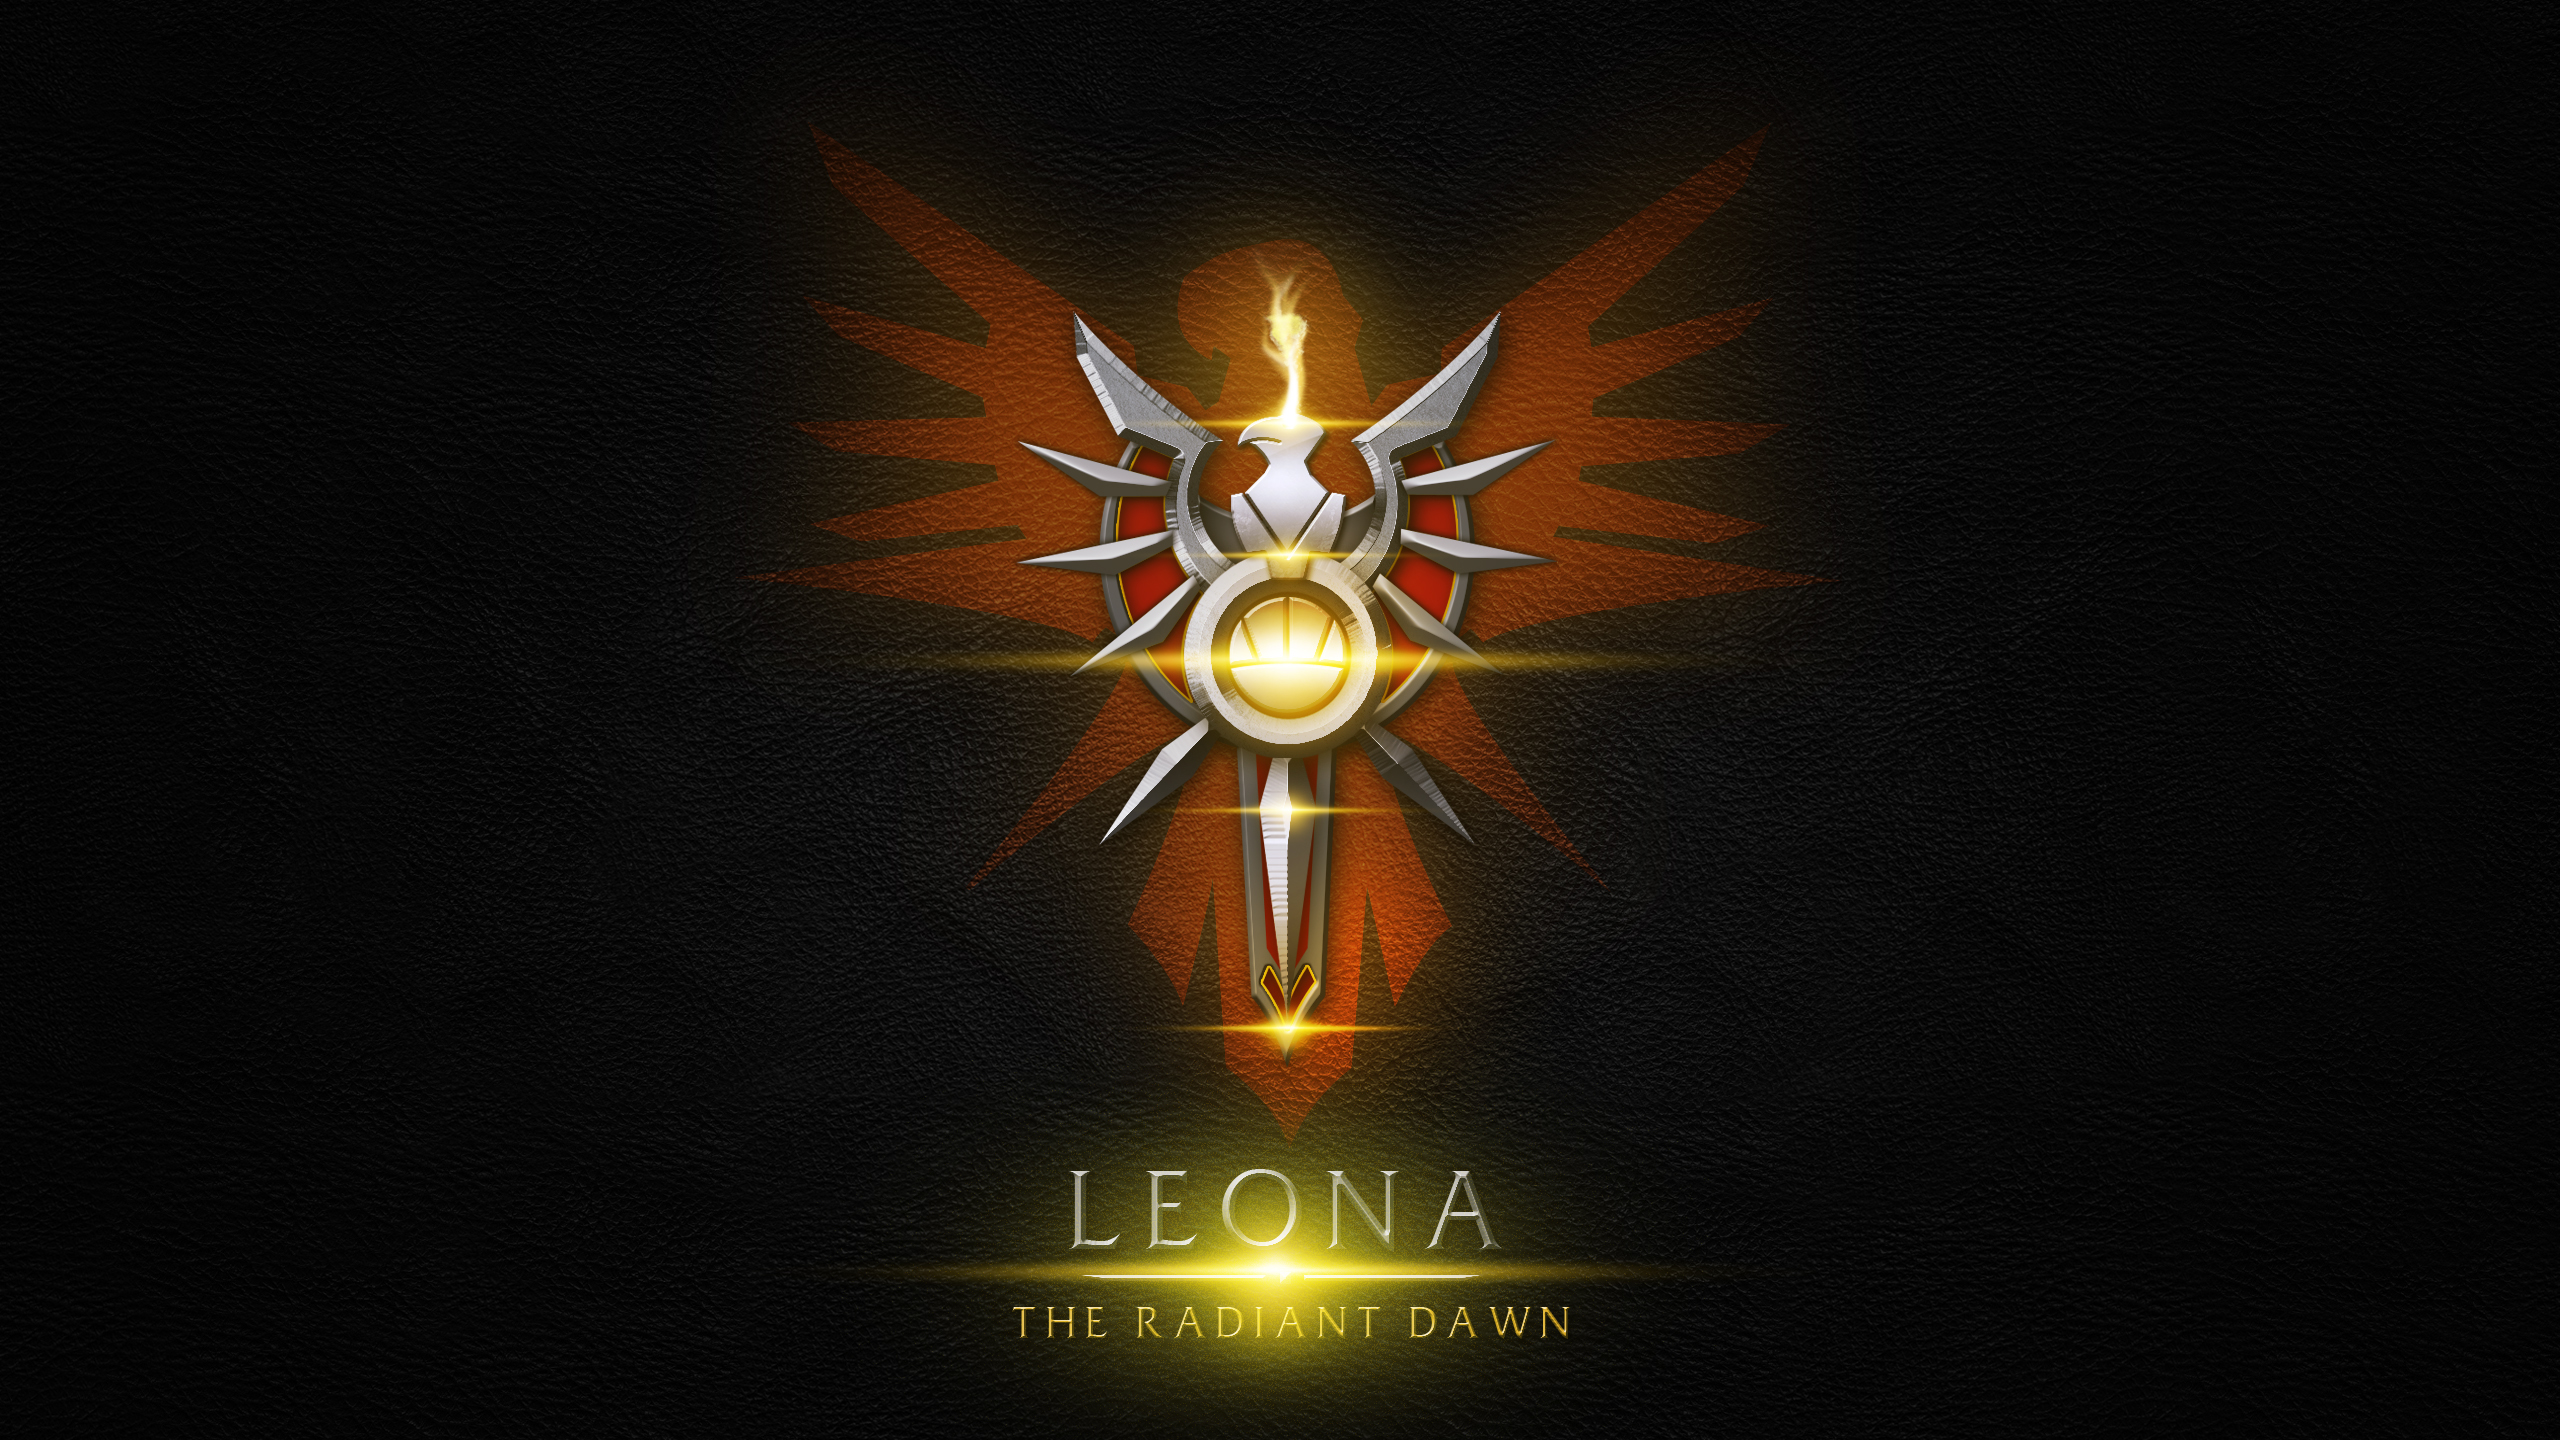 Leona League Of Legends Wallpapers Hd 1920x1080 League Of Legends